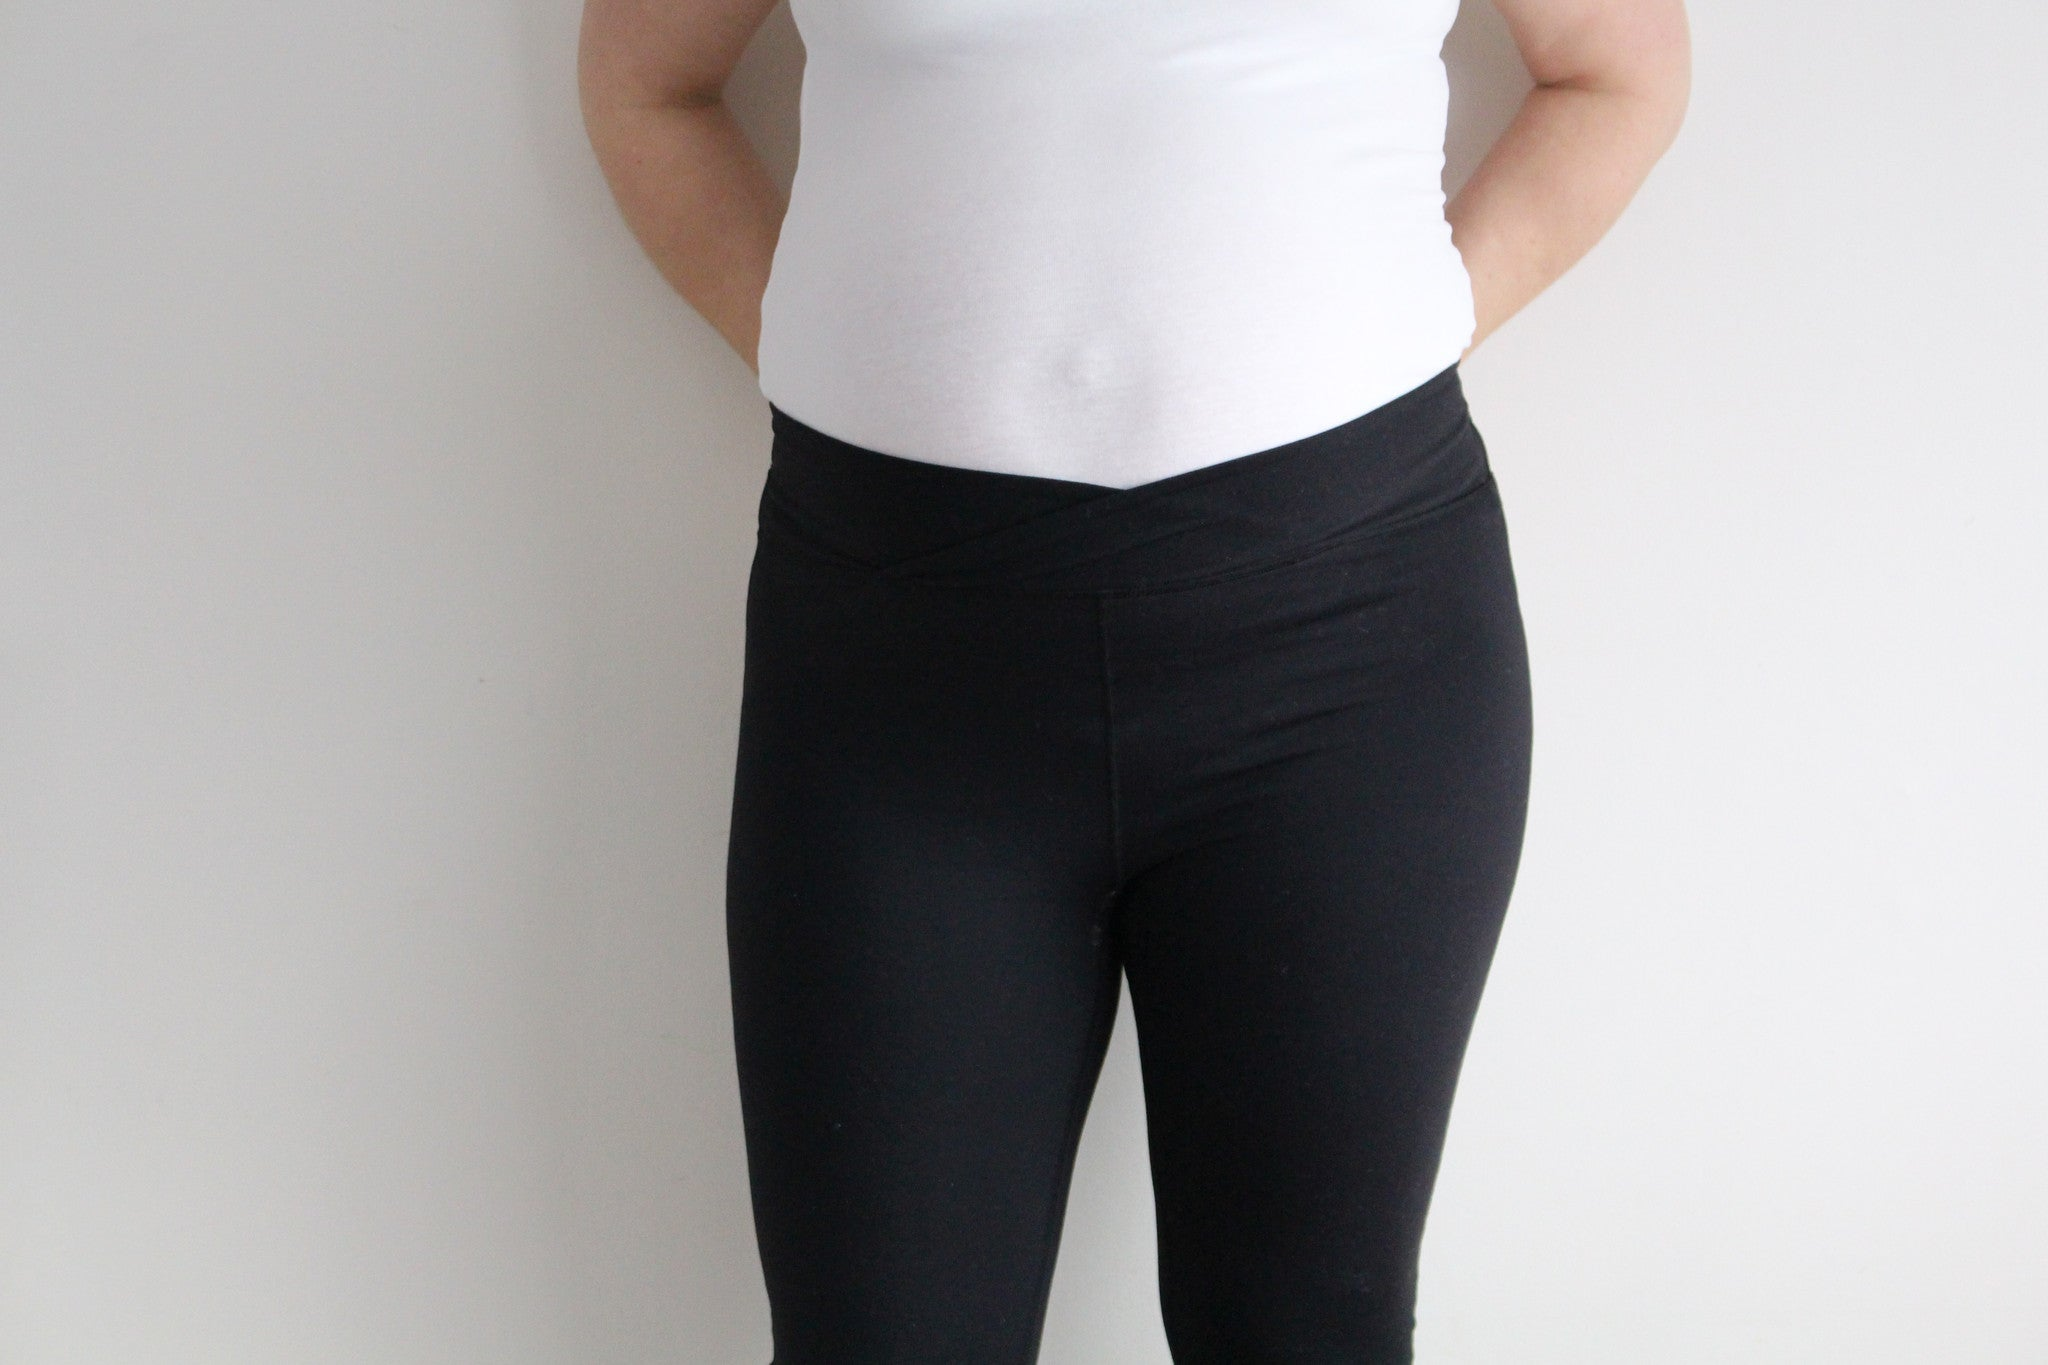 high waisted activewear legging postpartum pregnancy over the belly pregnant flatly style fashion fitness over the bump baby belly maternity style